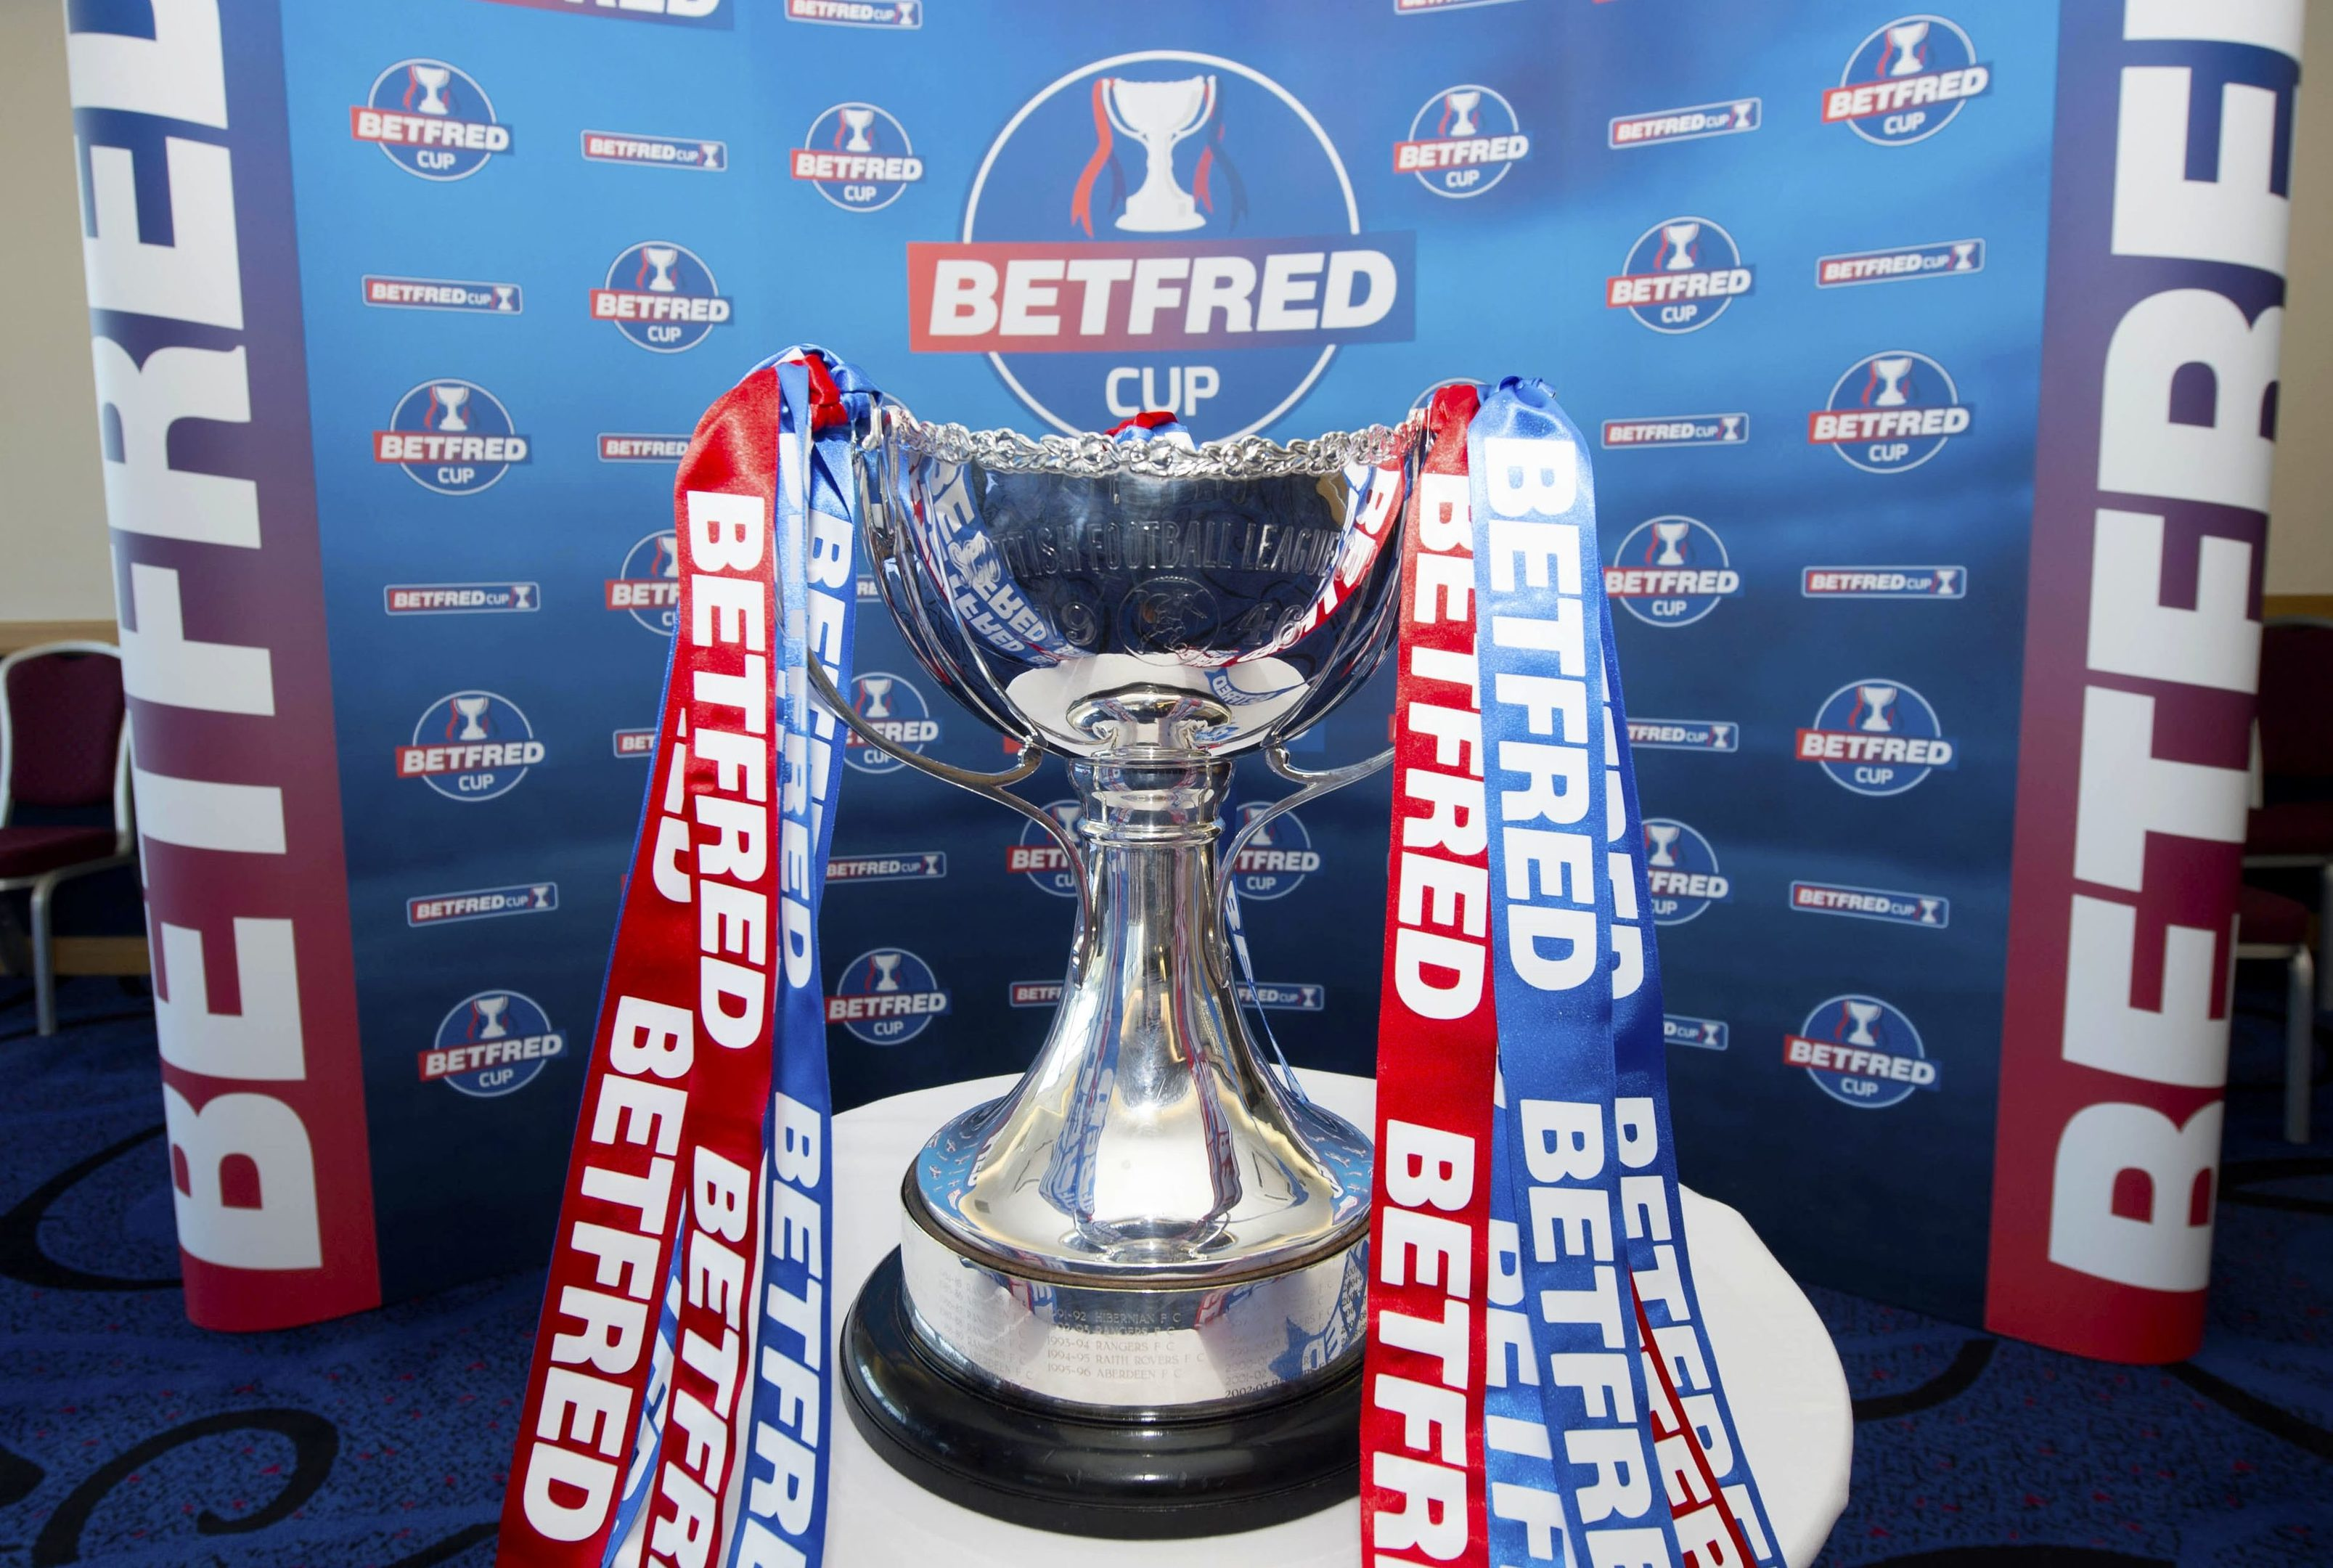 Betfred Cup.